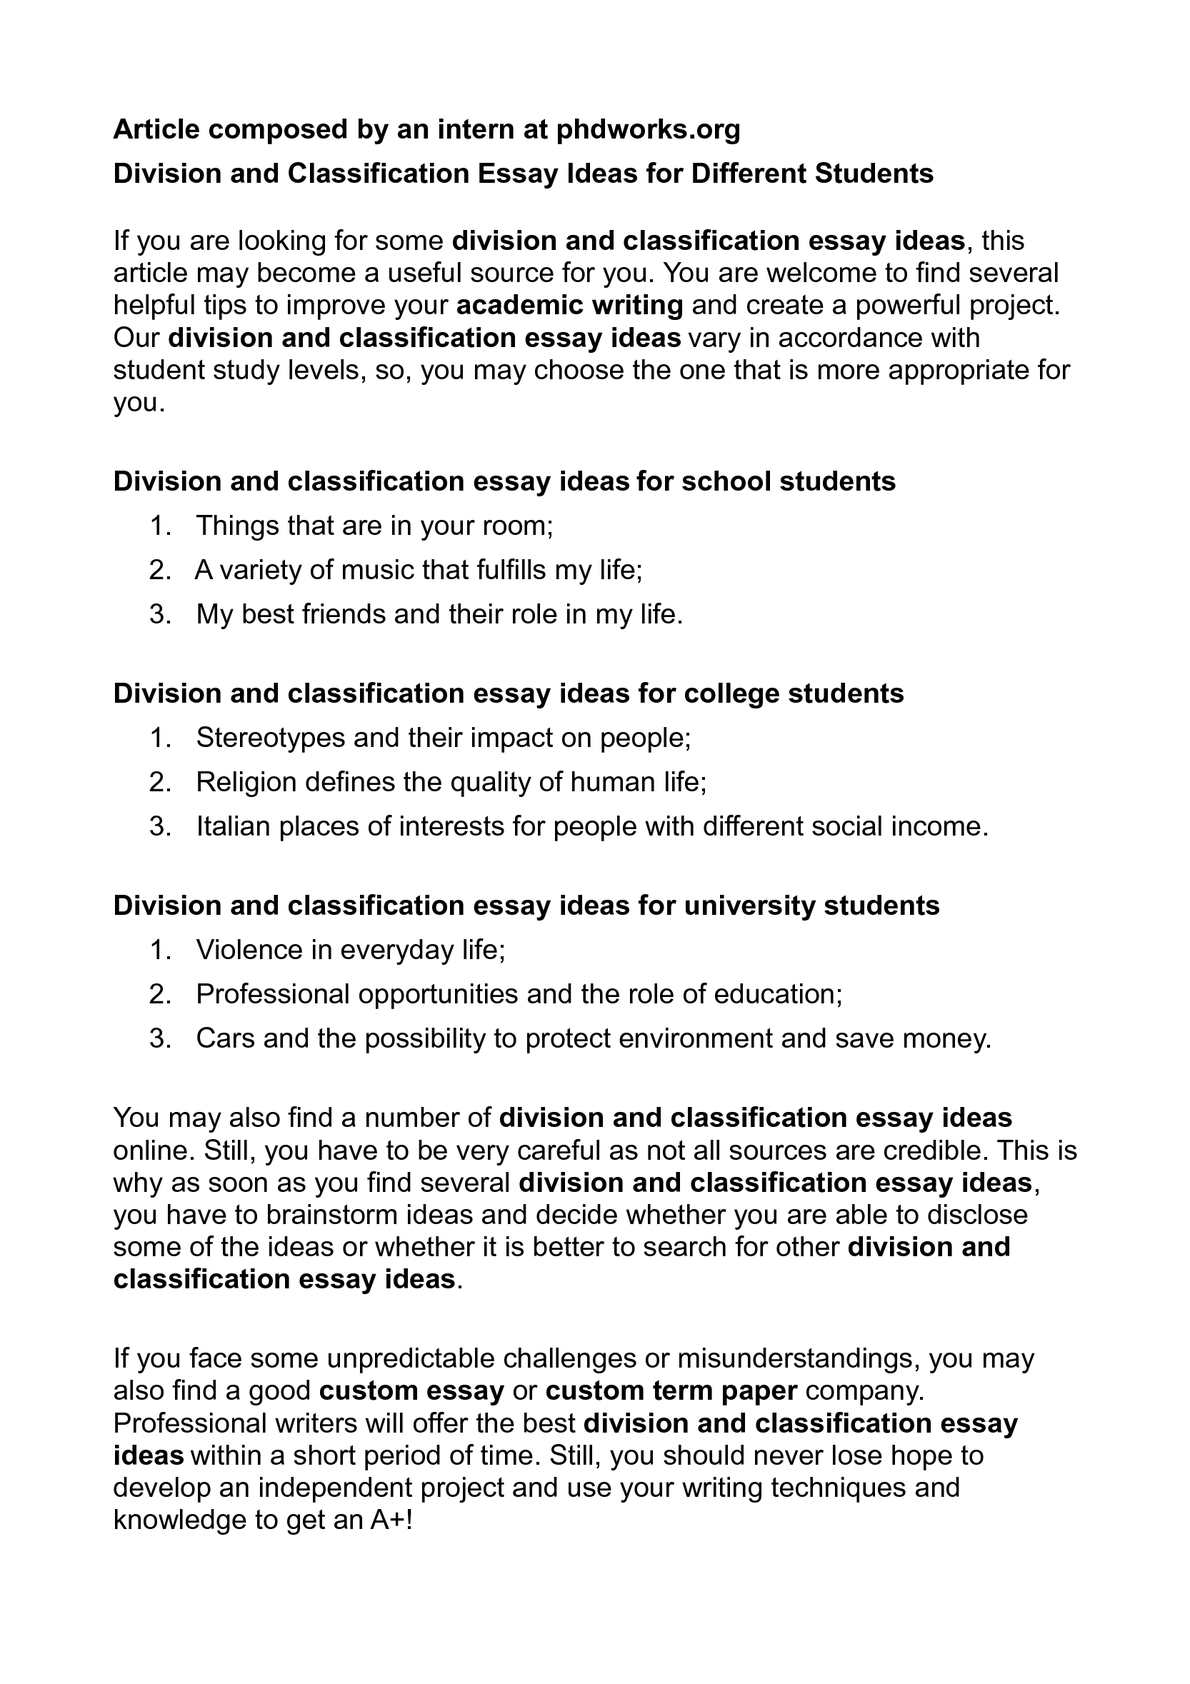 calam atilde copy o division and classification essay ideas for different calamatildecopyo division and classification essay ideas for different students